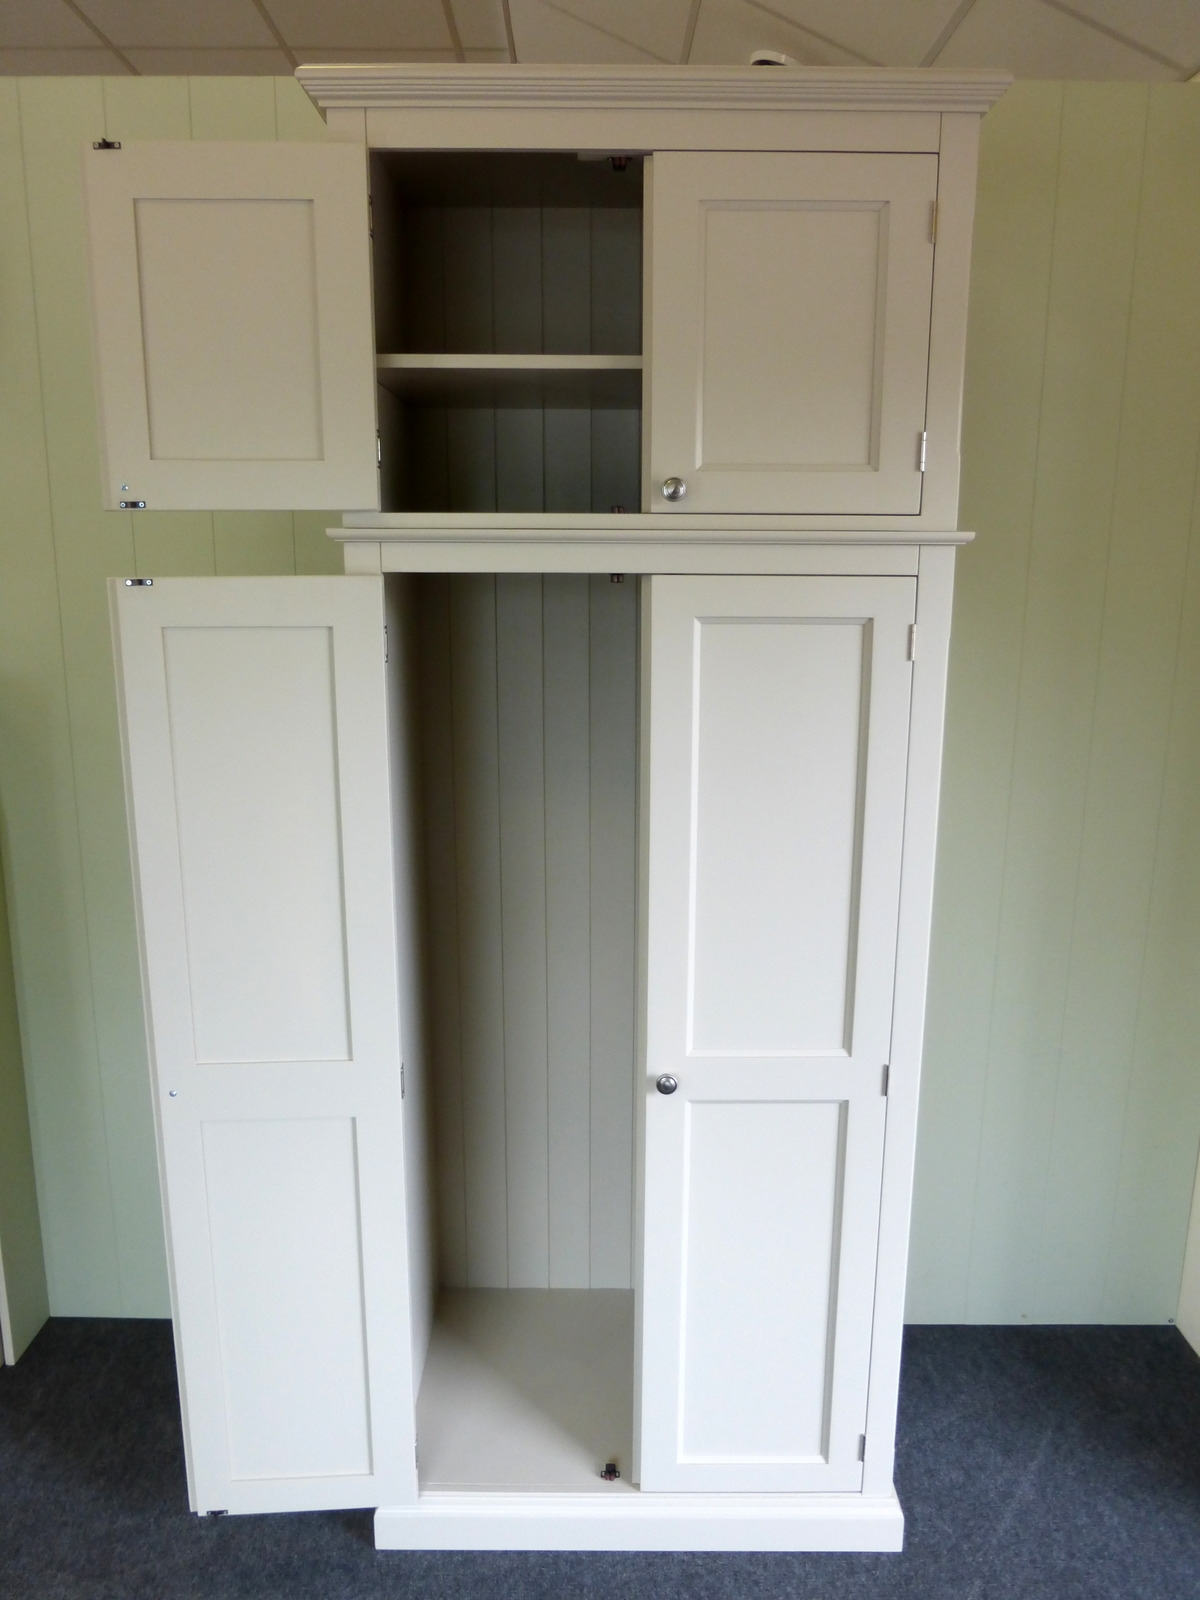 Bespoke Cupboard Intended For Fashionable Tall Storage Cupboard – Cupboards – Buy Pine, Oak, Painted And (View 2 of 15)